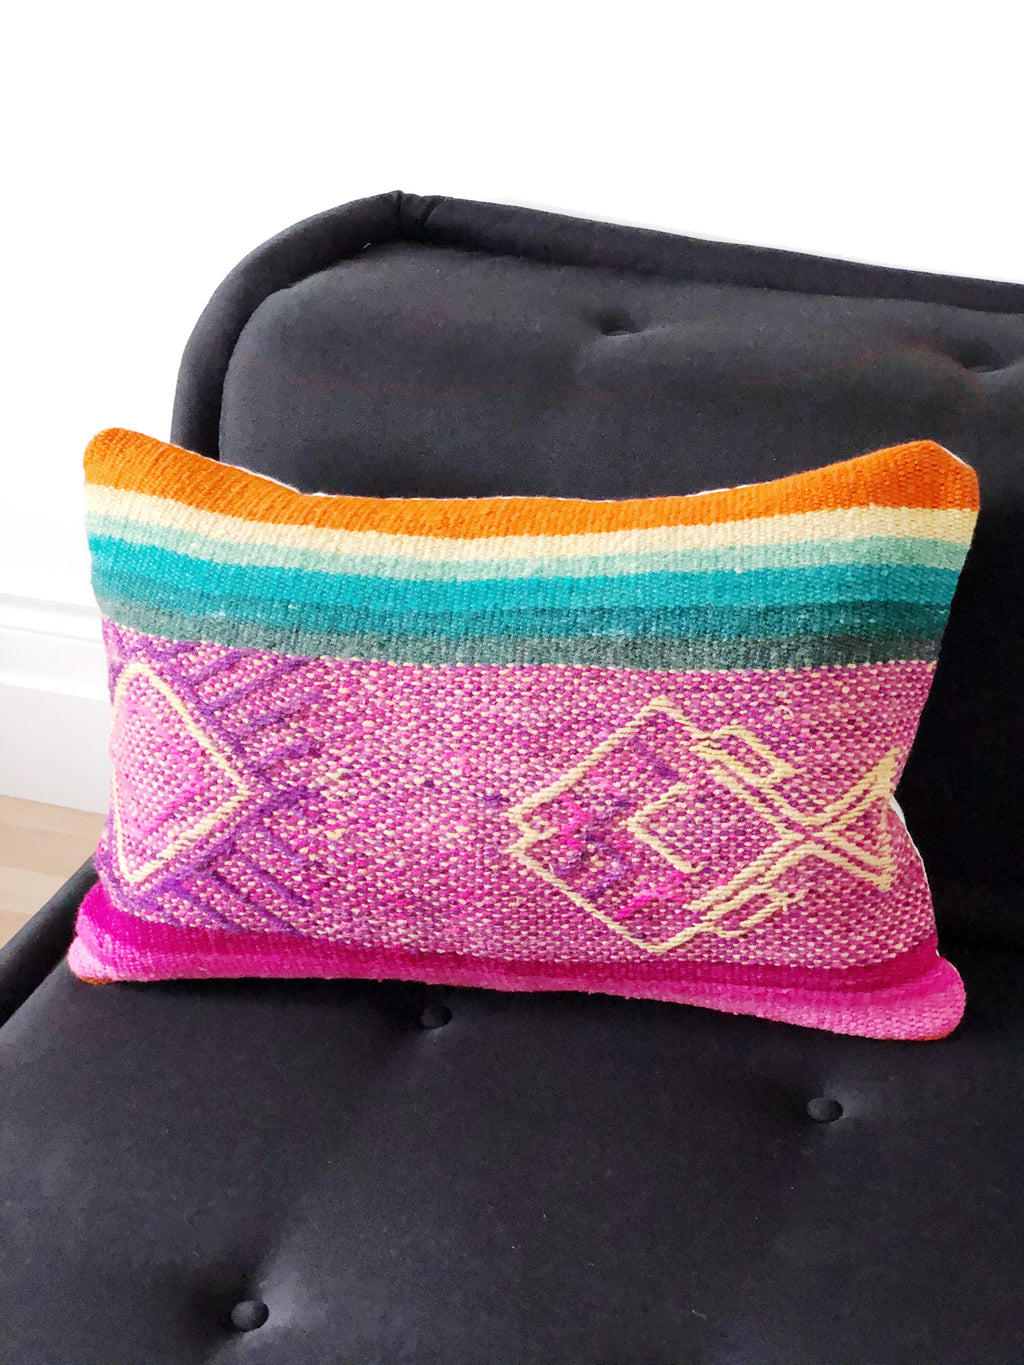 The Yanama cushion cover